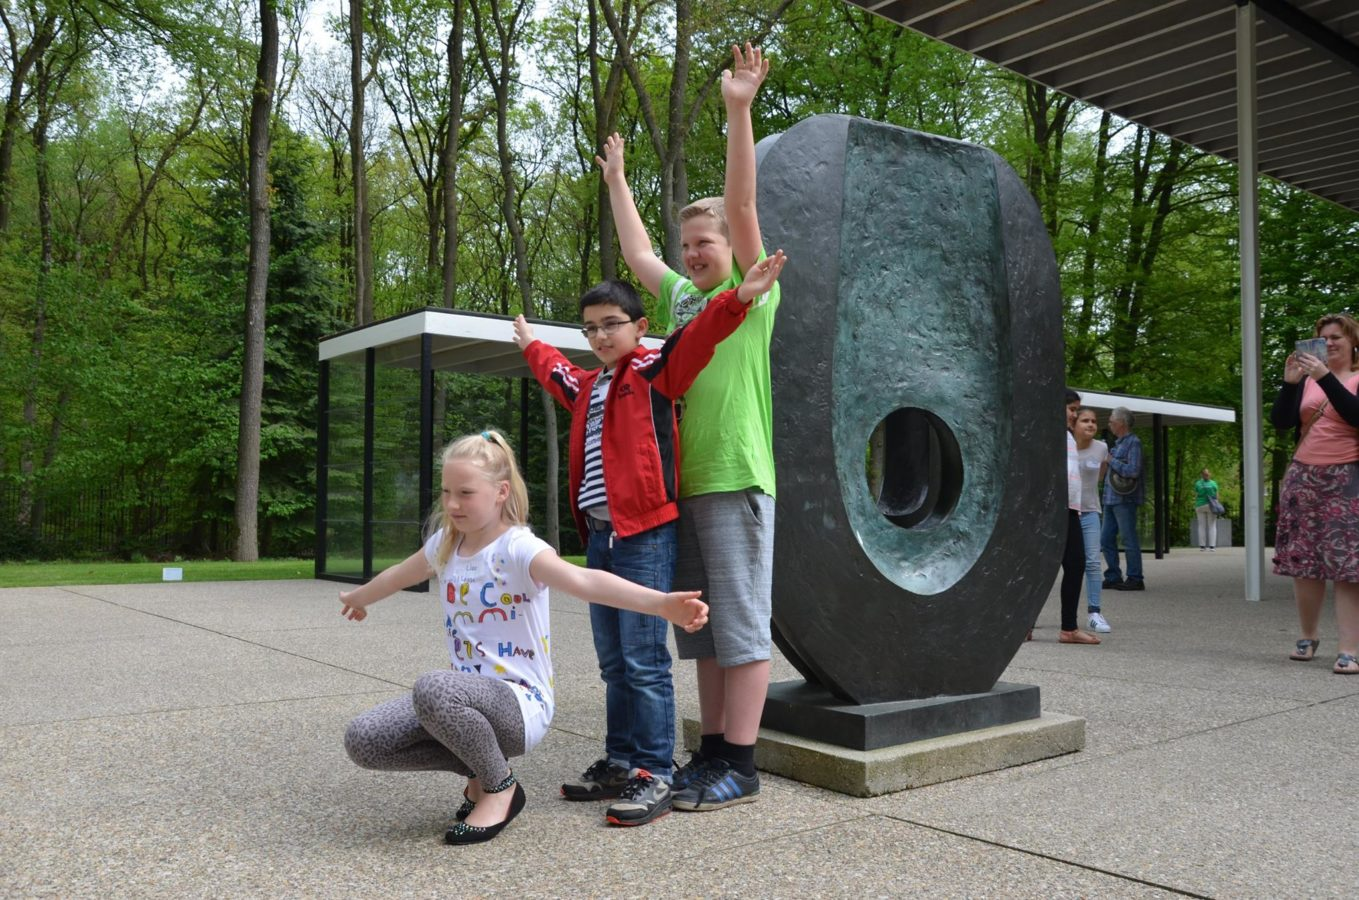 Children posing with Barbara Hepworth's Dual form, 1965 in the sculpture garden of the Kröller-Müller Museum.